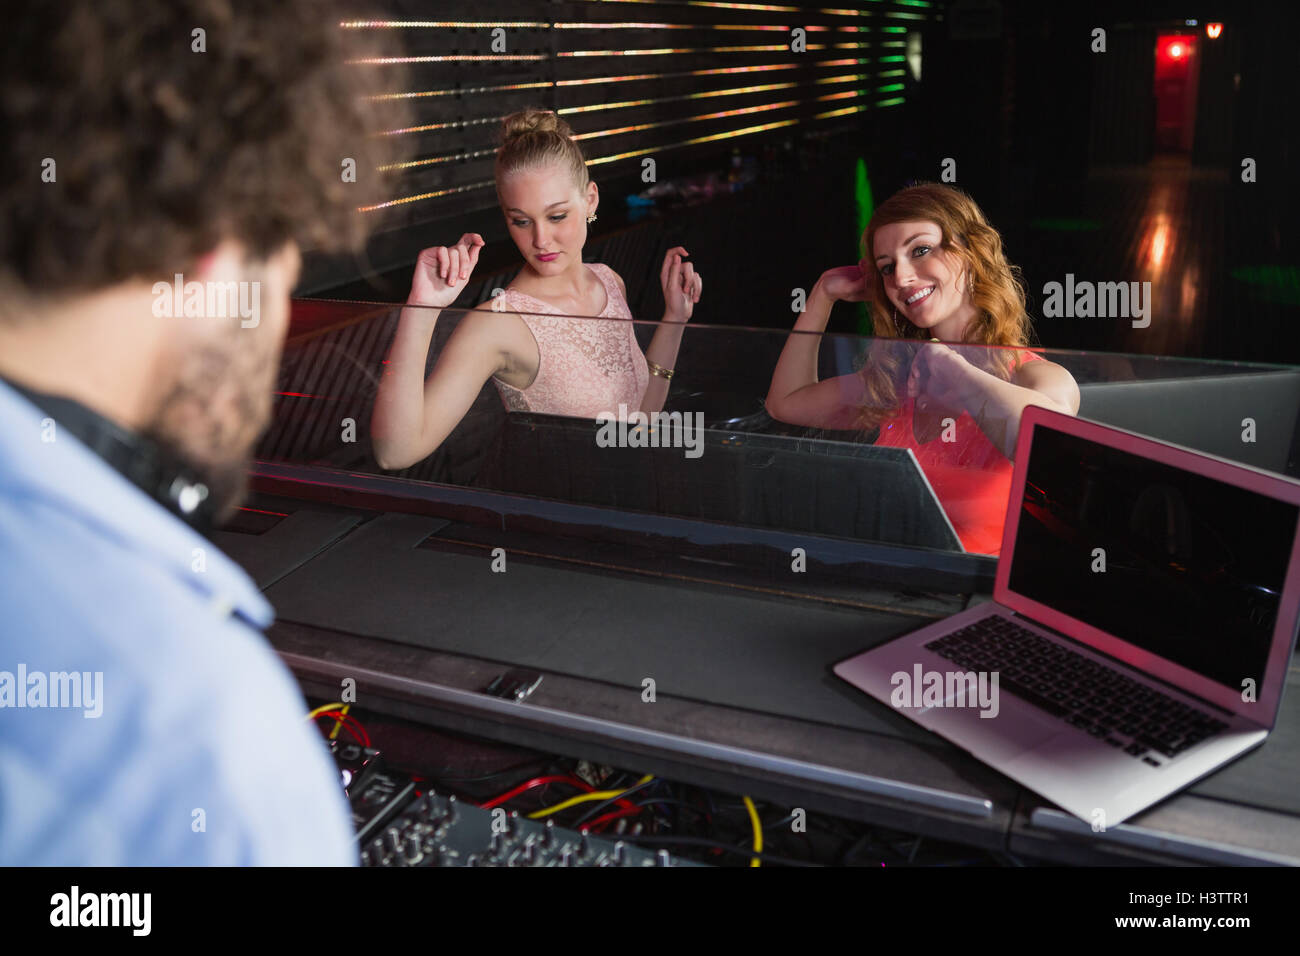 Male disc jockey playing music with two women dancing on the dance floor - Stock Image